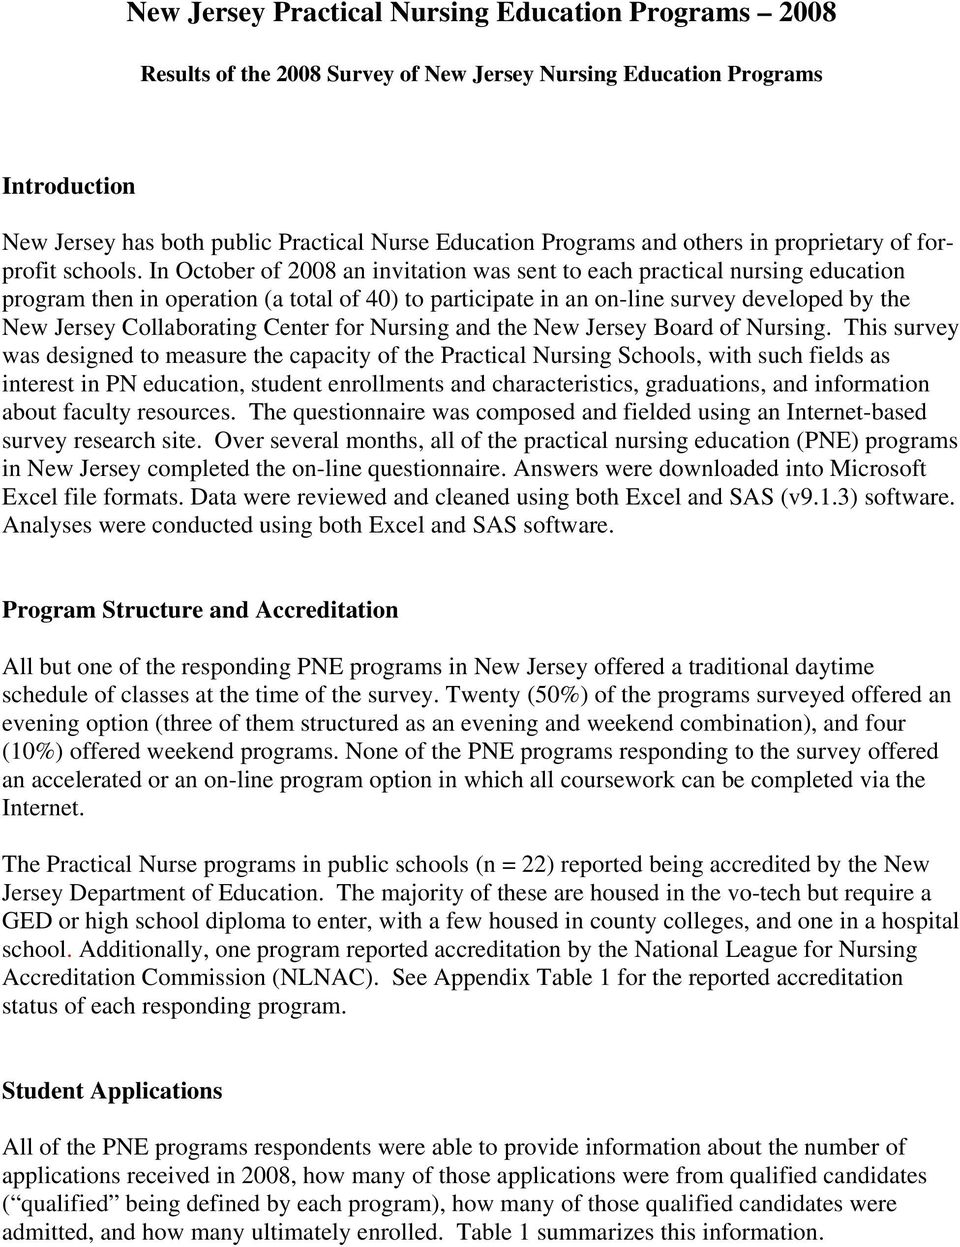 In October of 2008 an invitation was sent to each practical nursing education program then in operation (a total of 40) to participate in an on-line survey developed by the New Jersey Collaborating